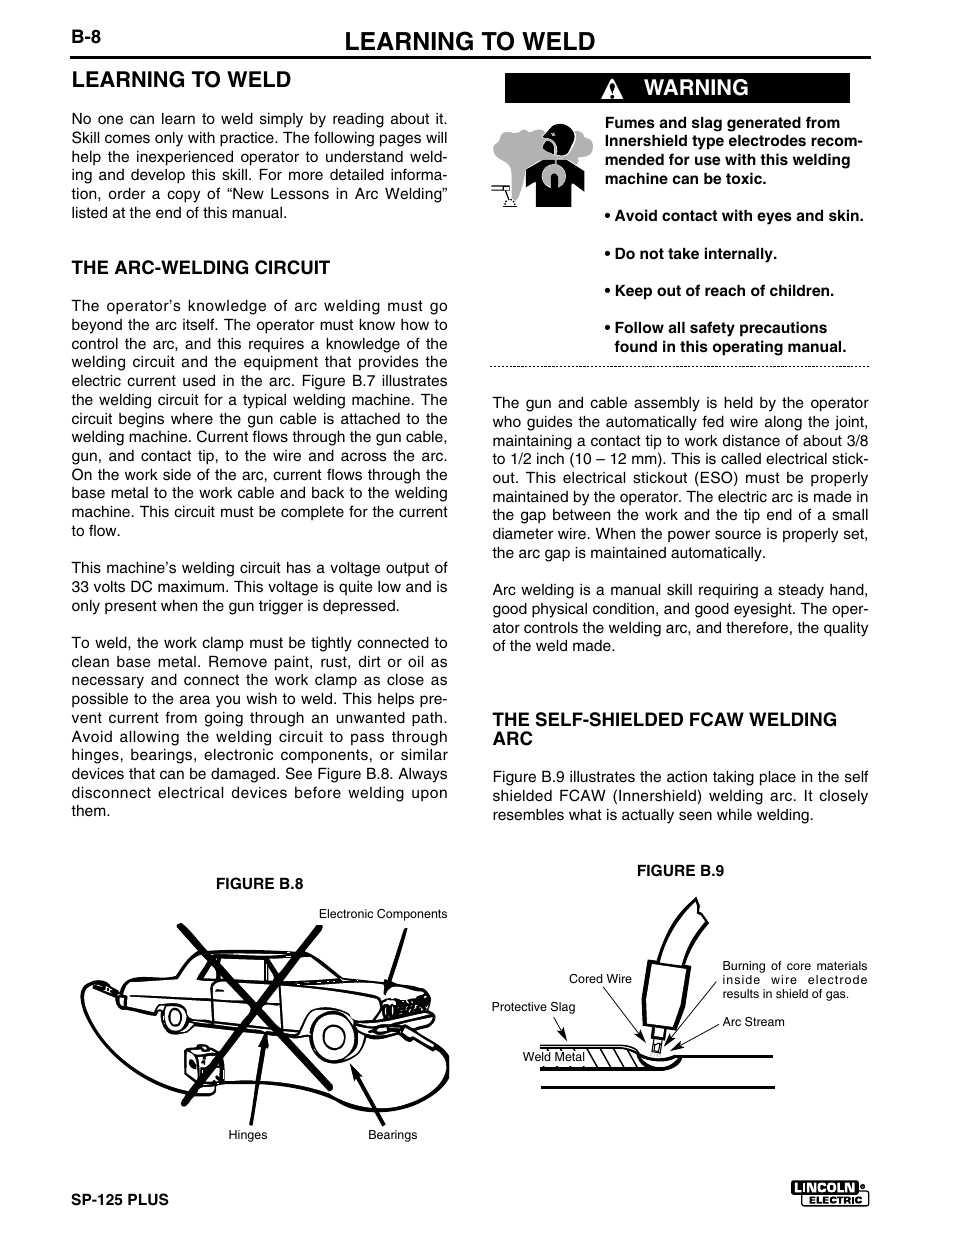 Learning to weld, Warning   Lincoln Electric IM536 SP-125 Plus User Manual  